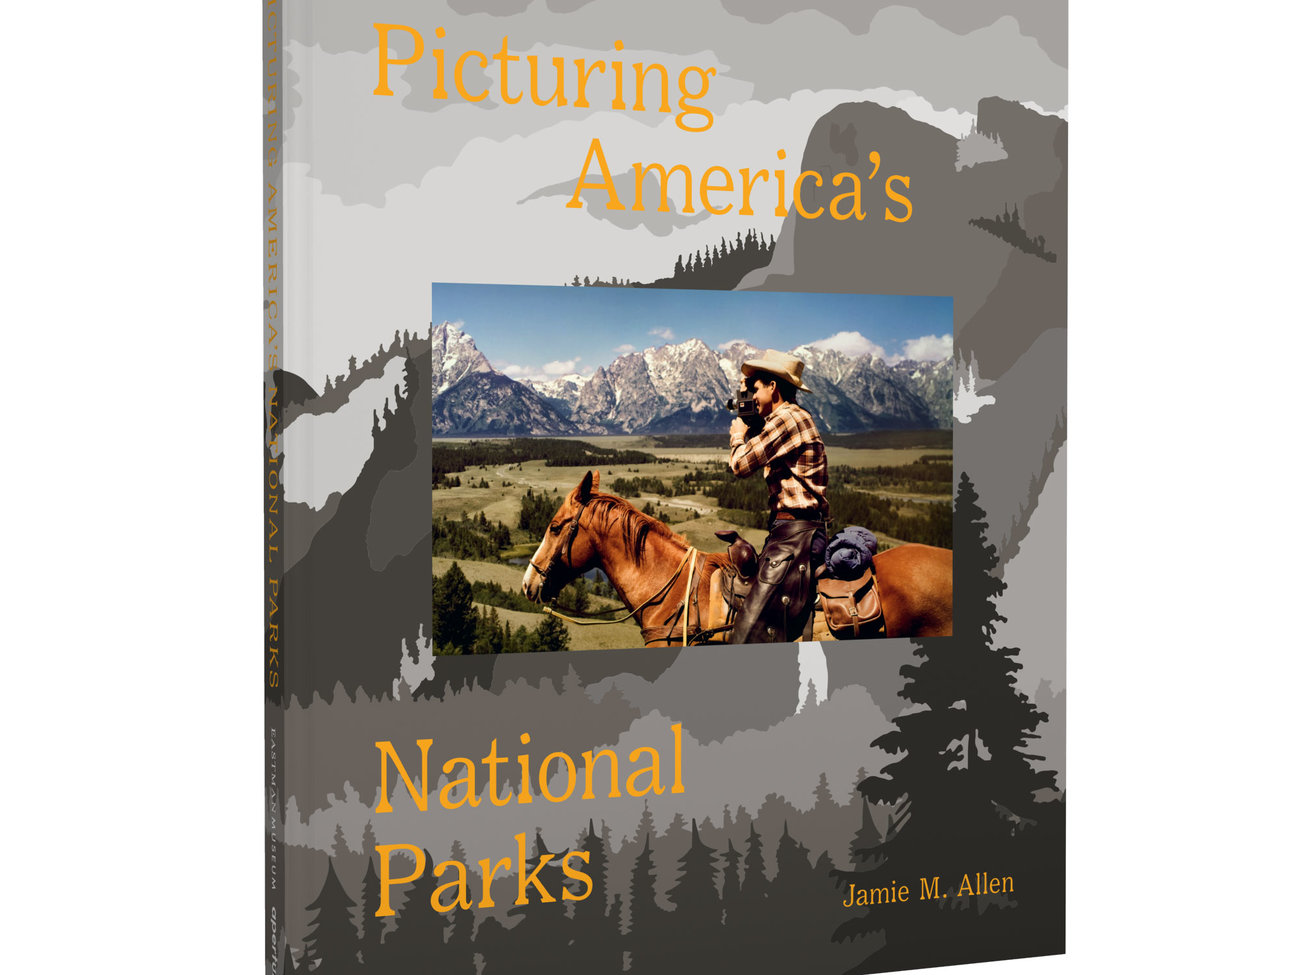 Eastman_NationalParks_Cover-BOOK0416.jpg